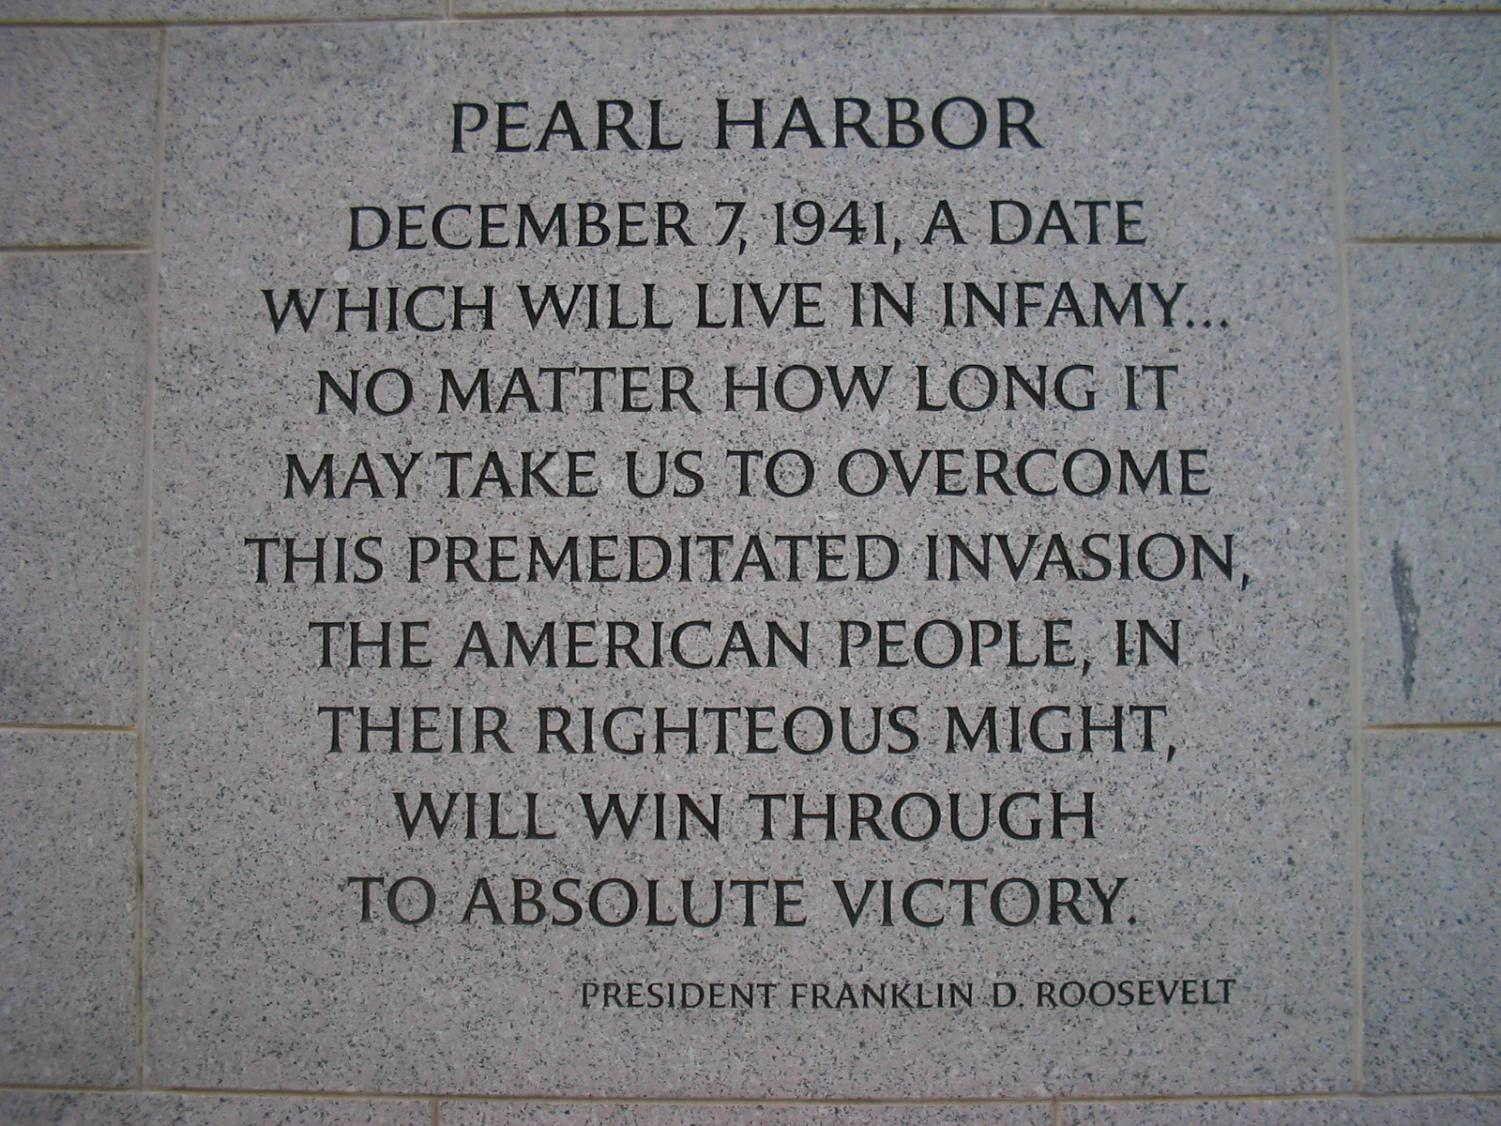 National Pearl Harbor Remembrance Day Cen10 News